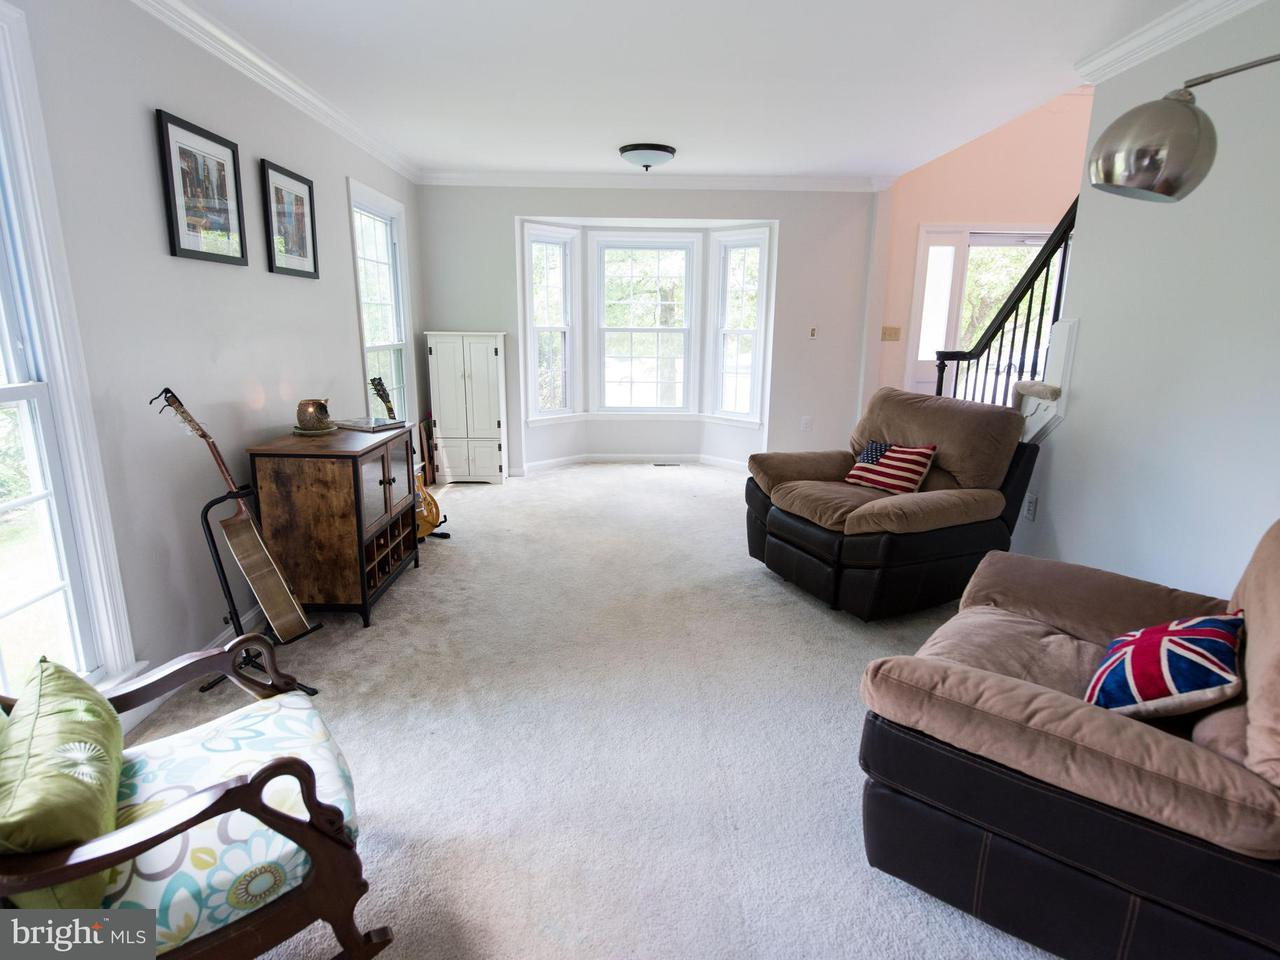 Additional photo for property listing at 810 Autumn Breeze Court 810 Autumn Breeze Court Herndon, Virginia 20170 Estados Unidos